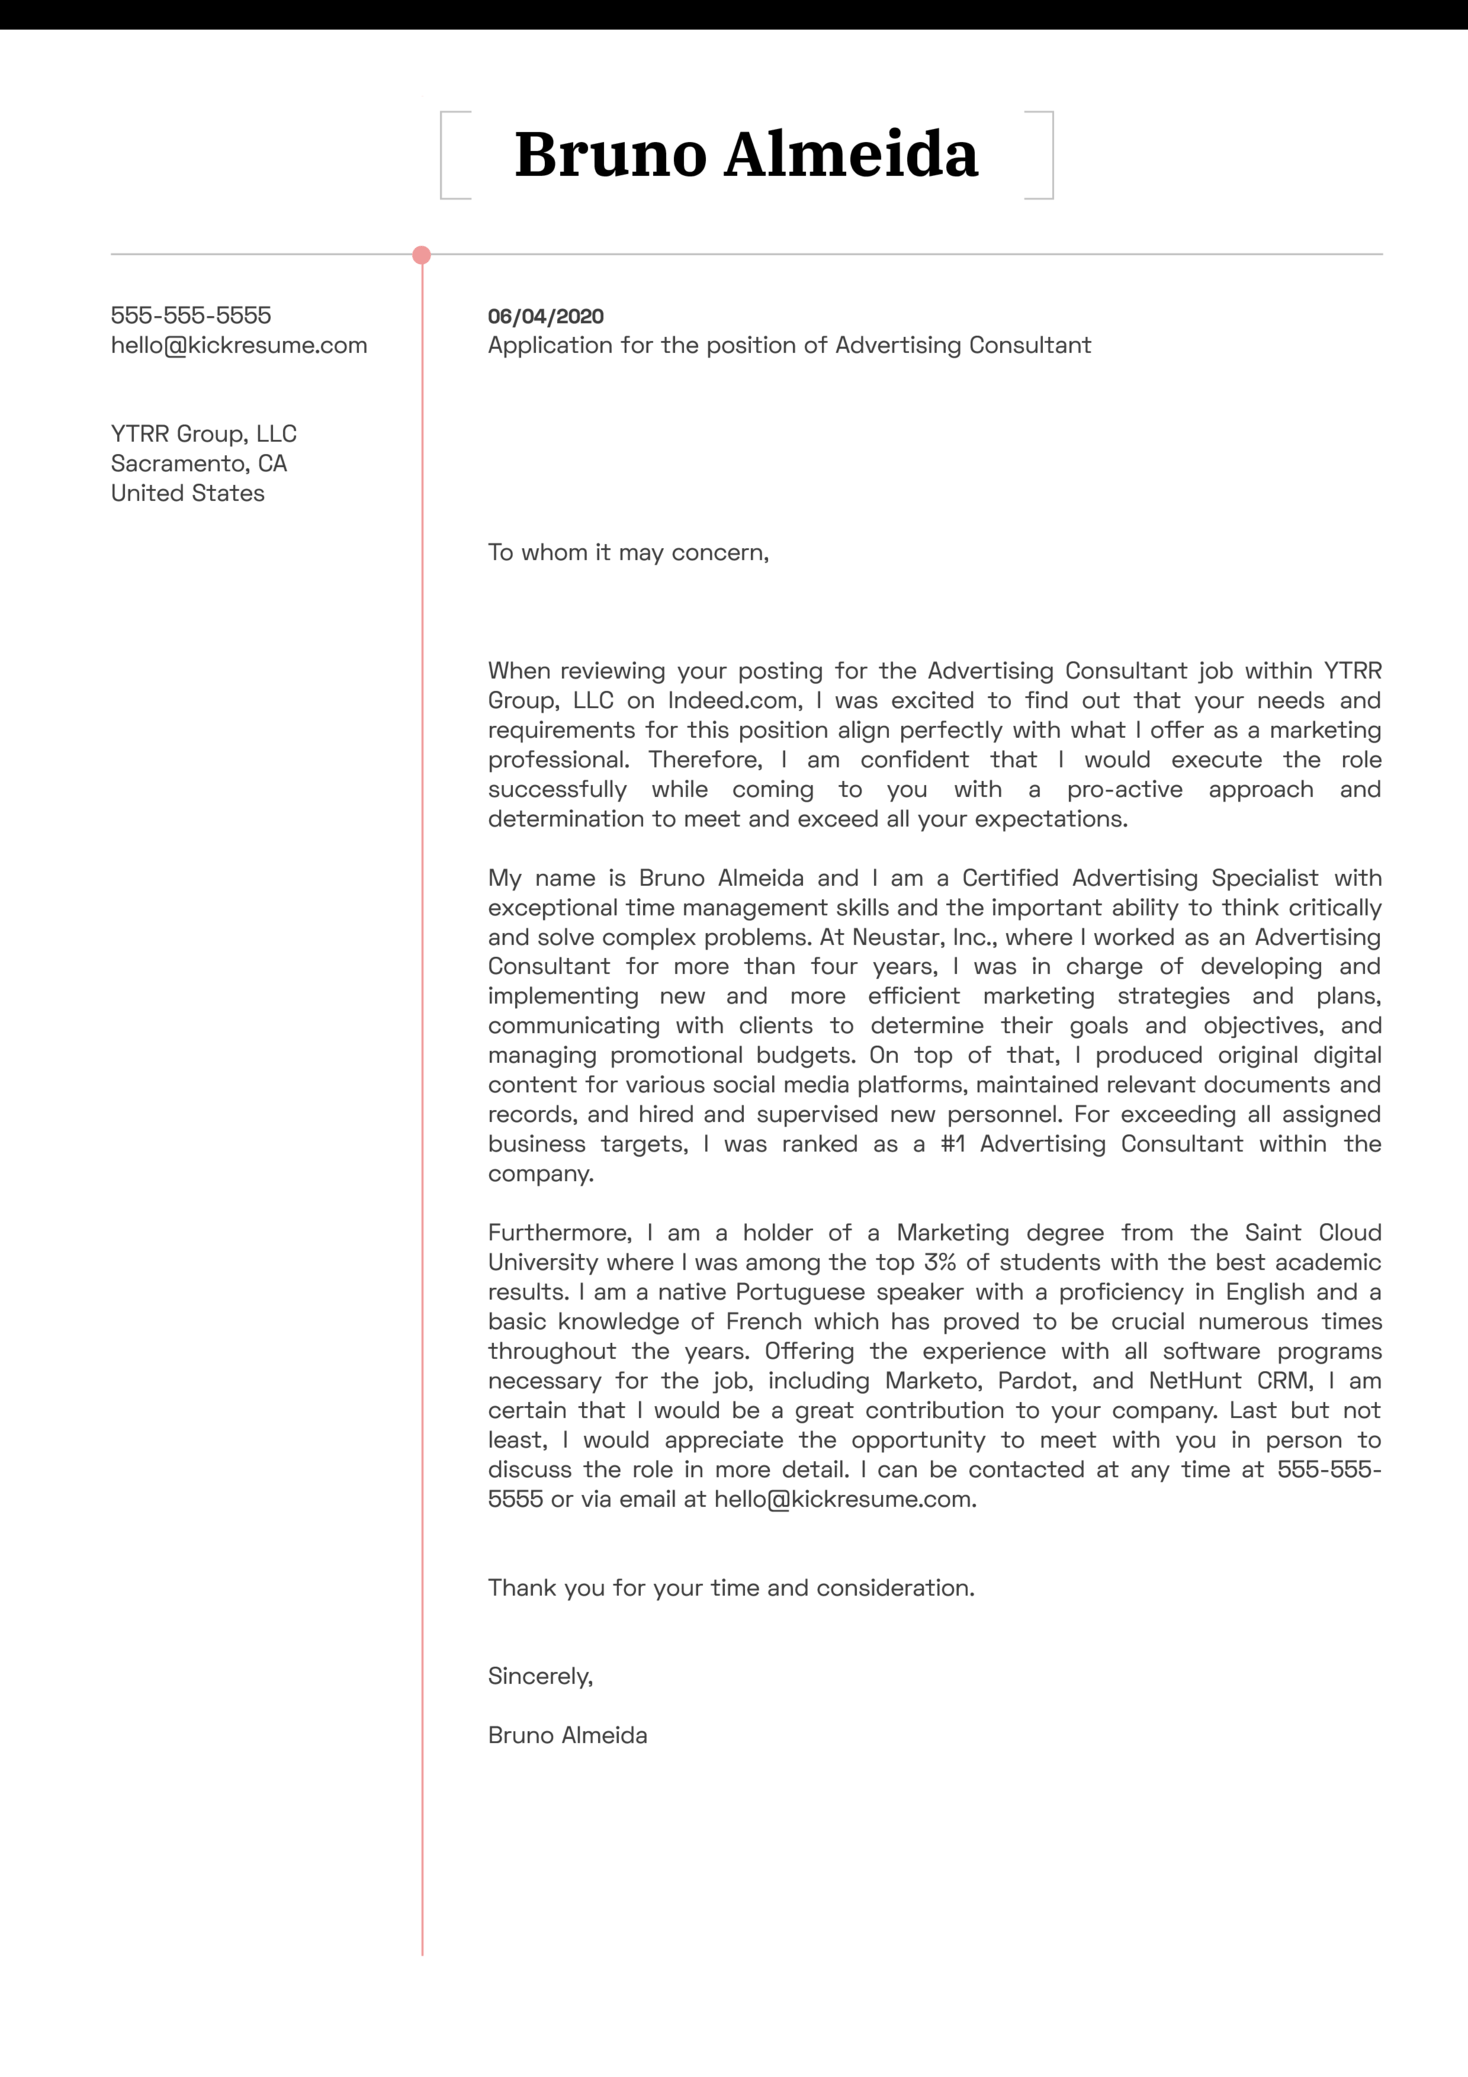 Advertising Consultant Cover Letter Template